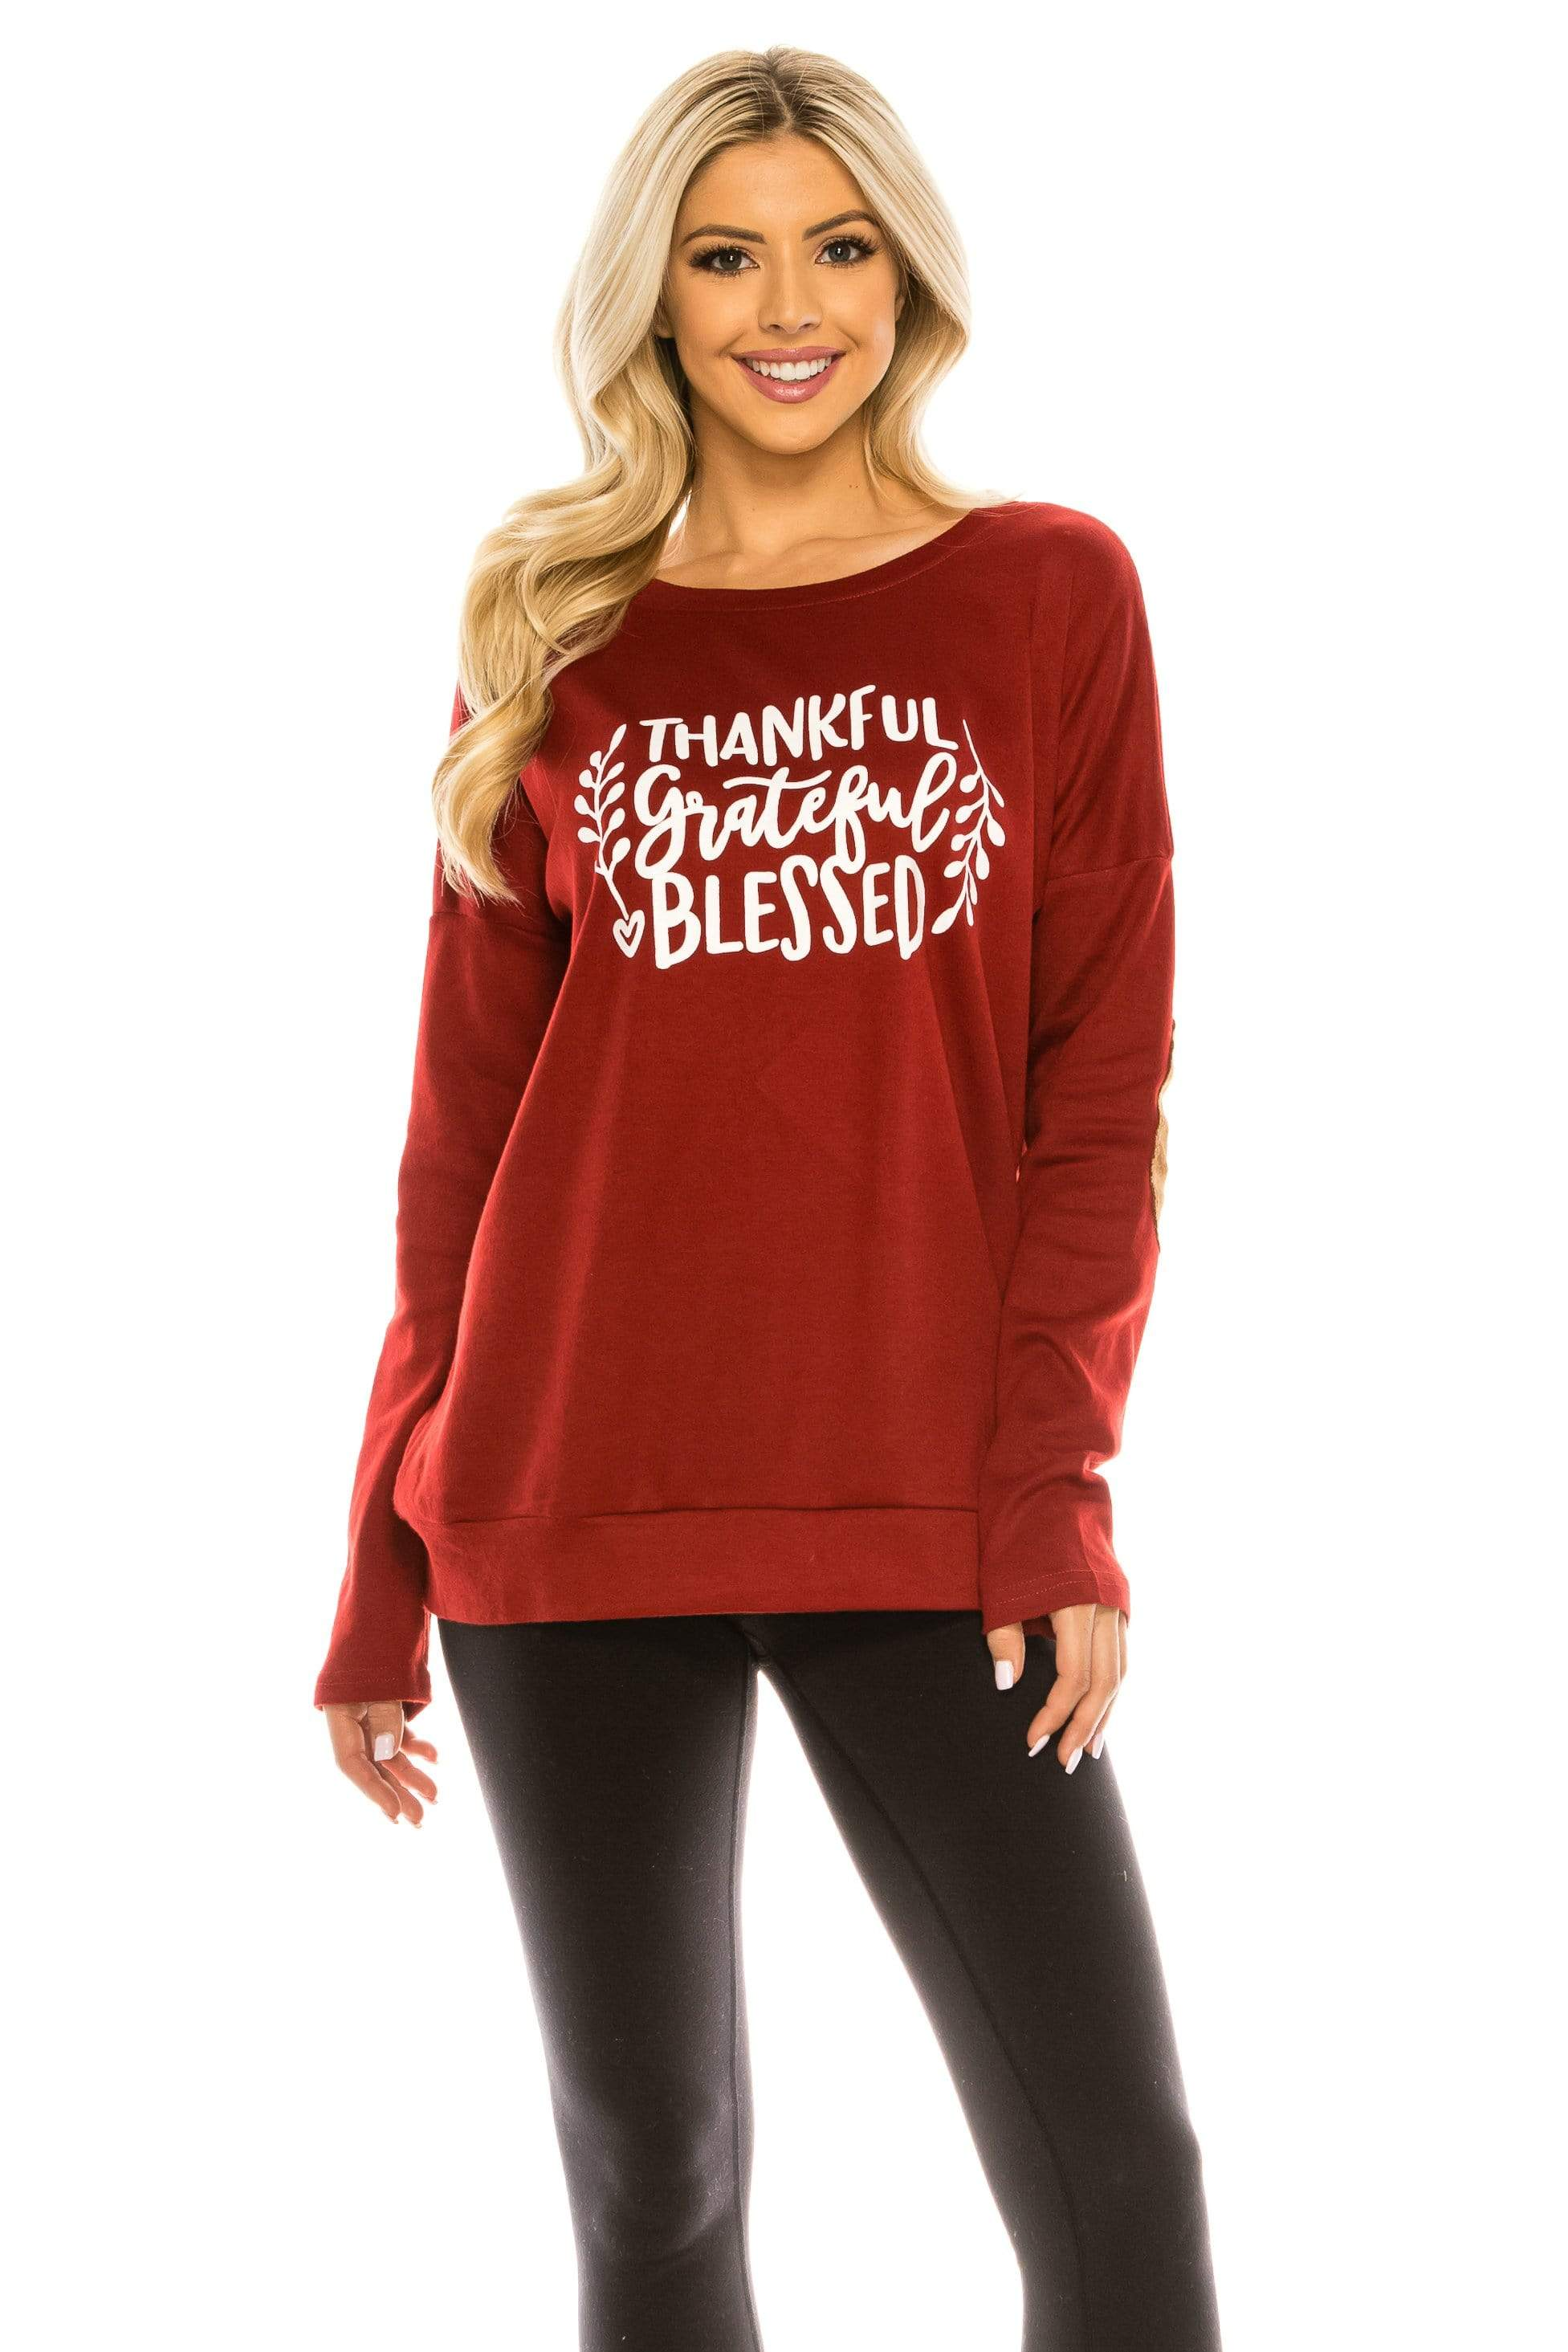 Haute Edition WOMEN'S TOP TGB BURGUNDY / S Haute Edition Women's Thanksgiving Tunic Elbow Patch Graphic Tees